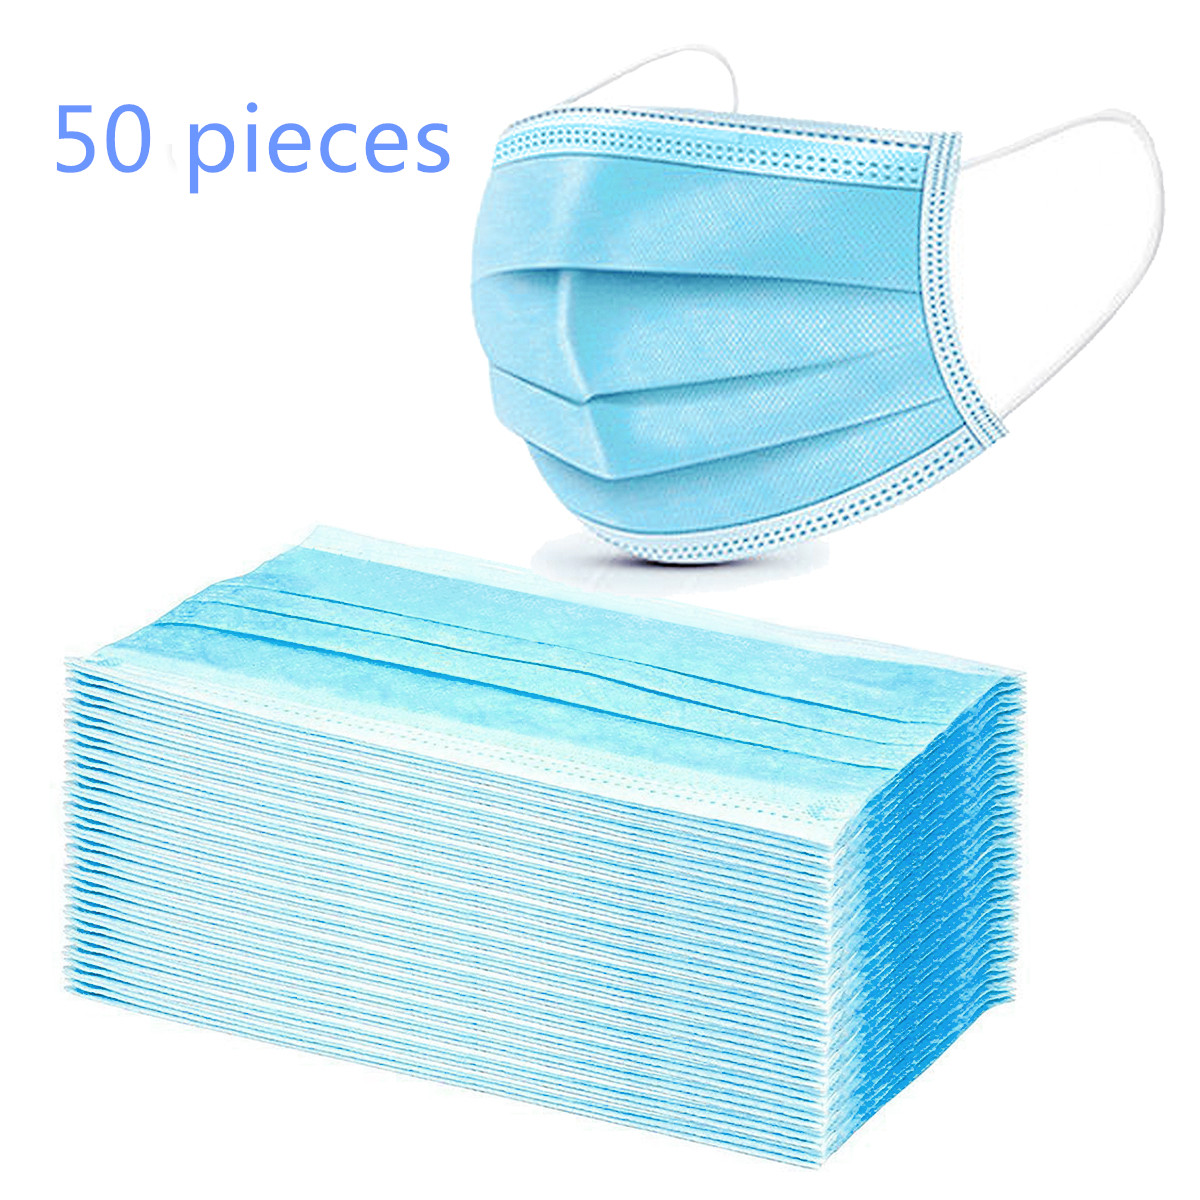 50PCS Disposable Face Mask Respirator Multi Layers Filter Pad  Prevention Safety Anti-Dust Protective Face Mouth Masks